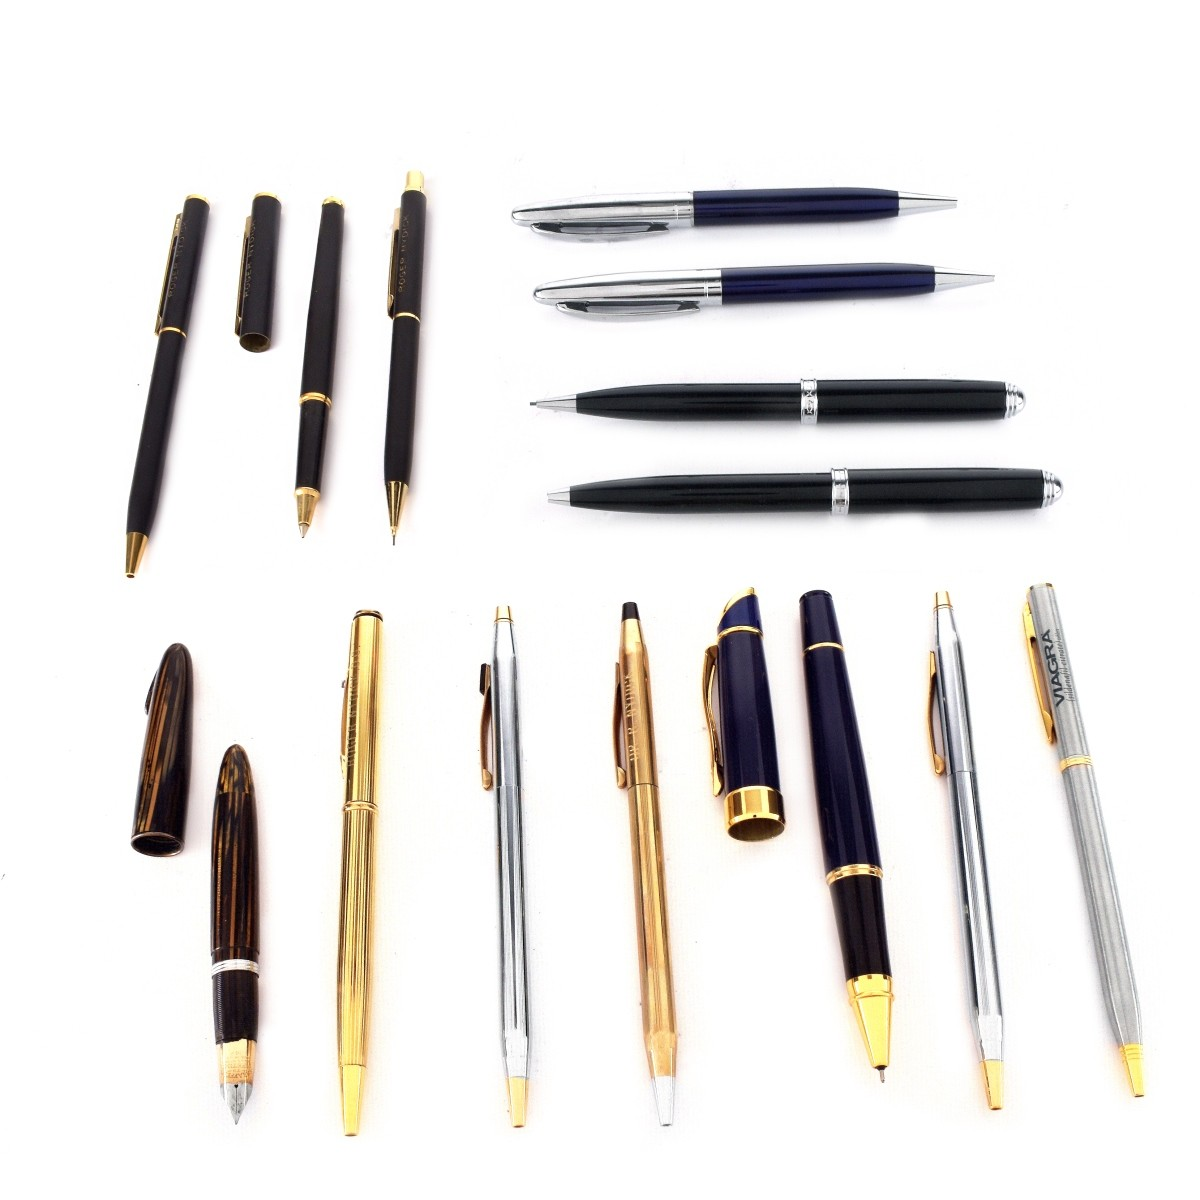 14 Assorted Pens, Sheaffer's, Cross,Cardin etc